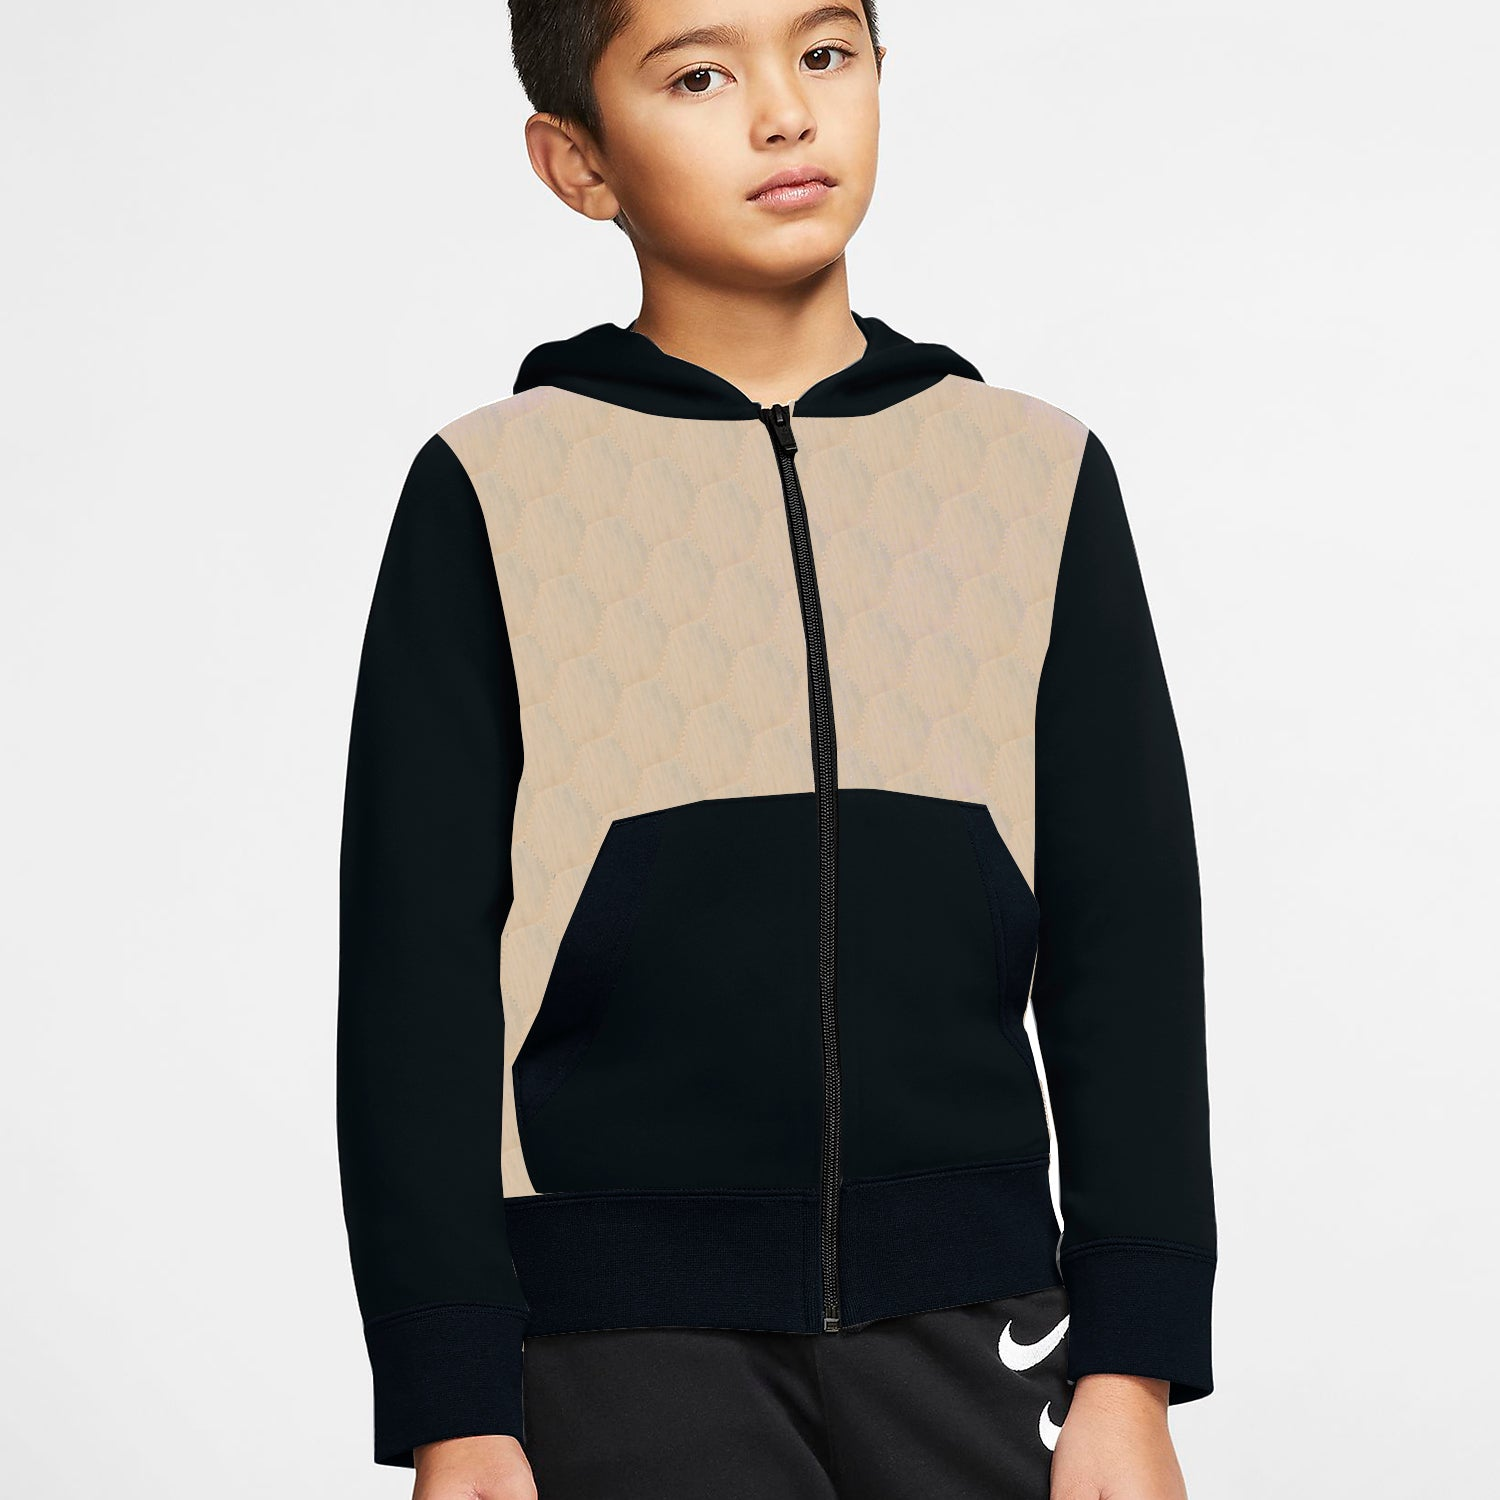 Tommy Hilfiger Quilted Zipper Hoodie For Kids-Peach Melange-SP3342